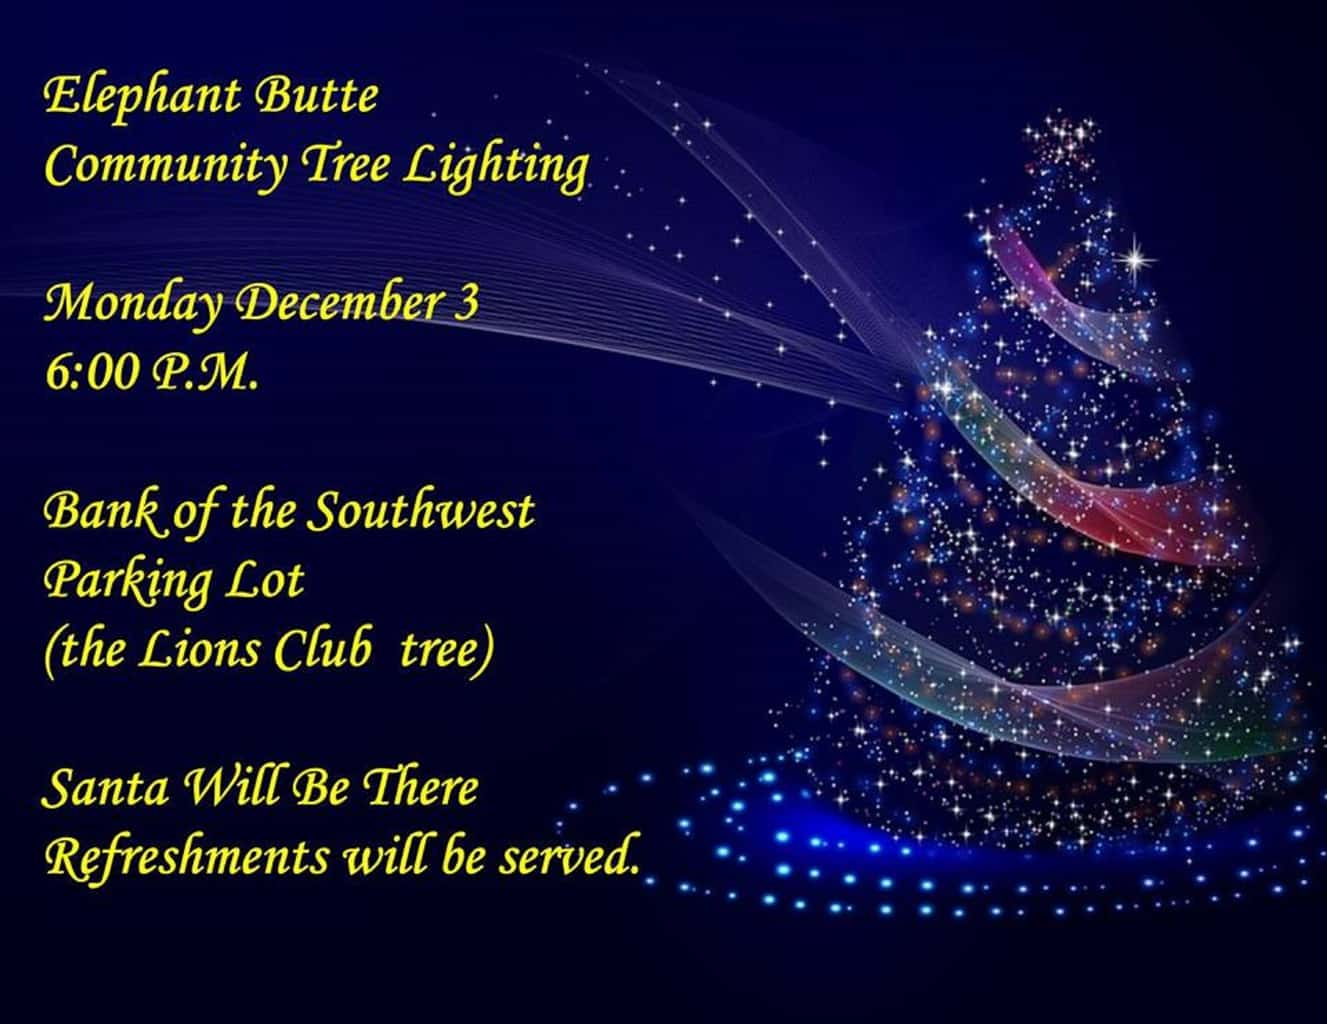 Elephant Butte Community Tree Lighting Party